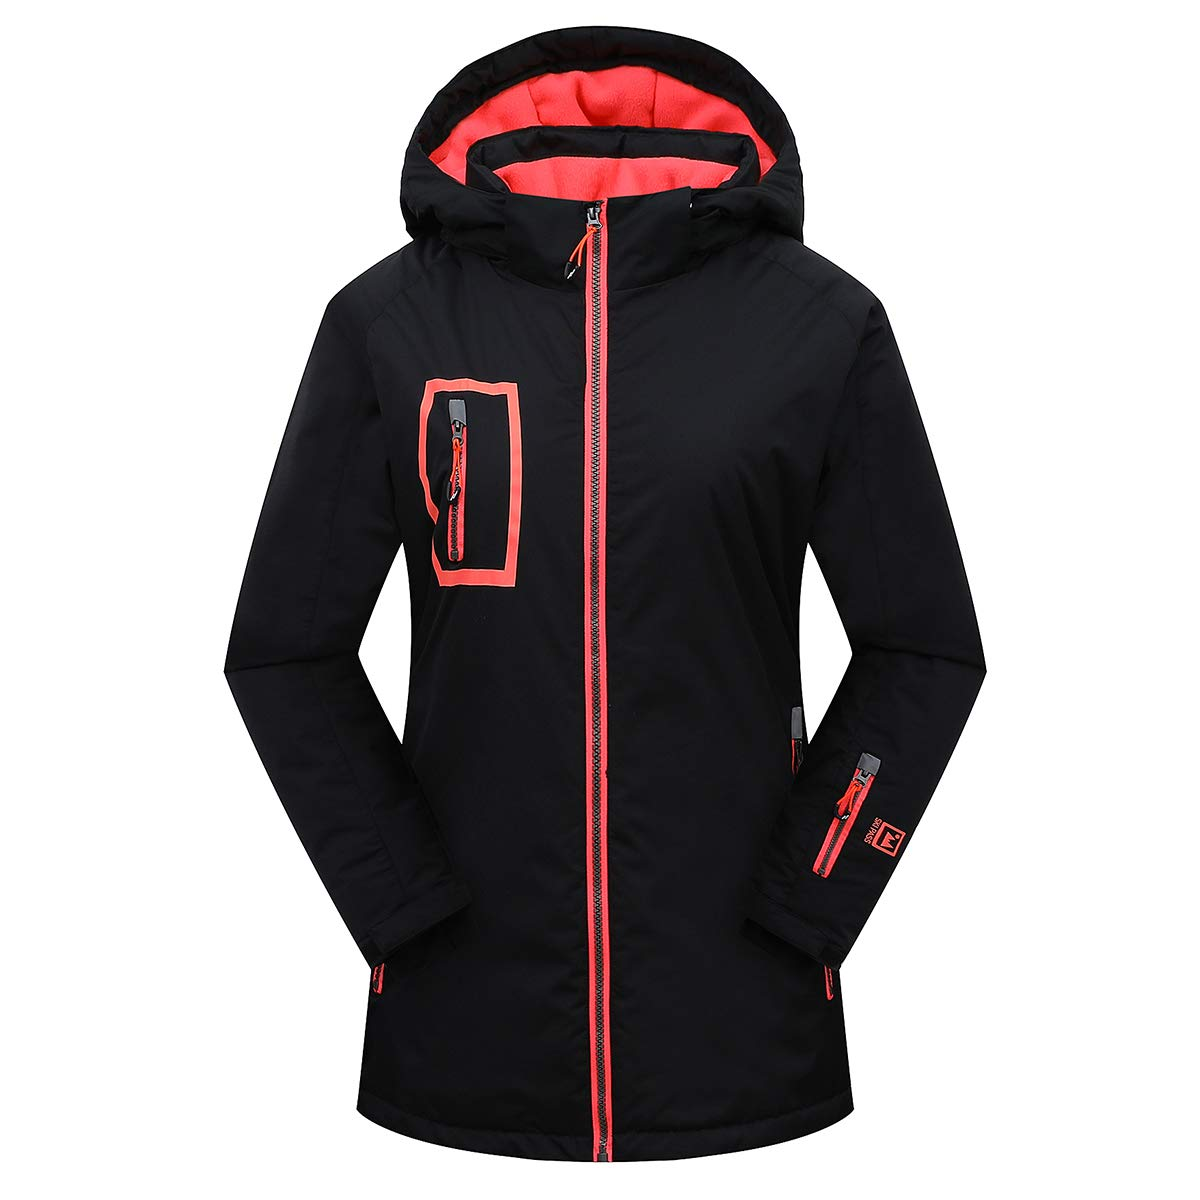 Phibee Girl's Sportswear Ski Jacket - Under $100